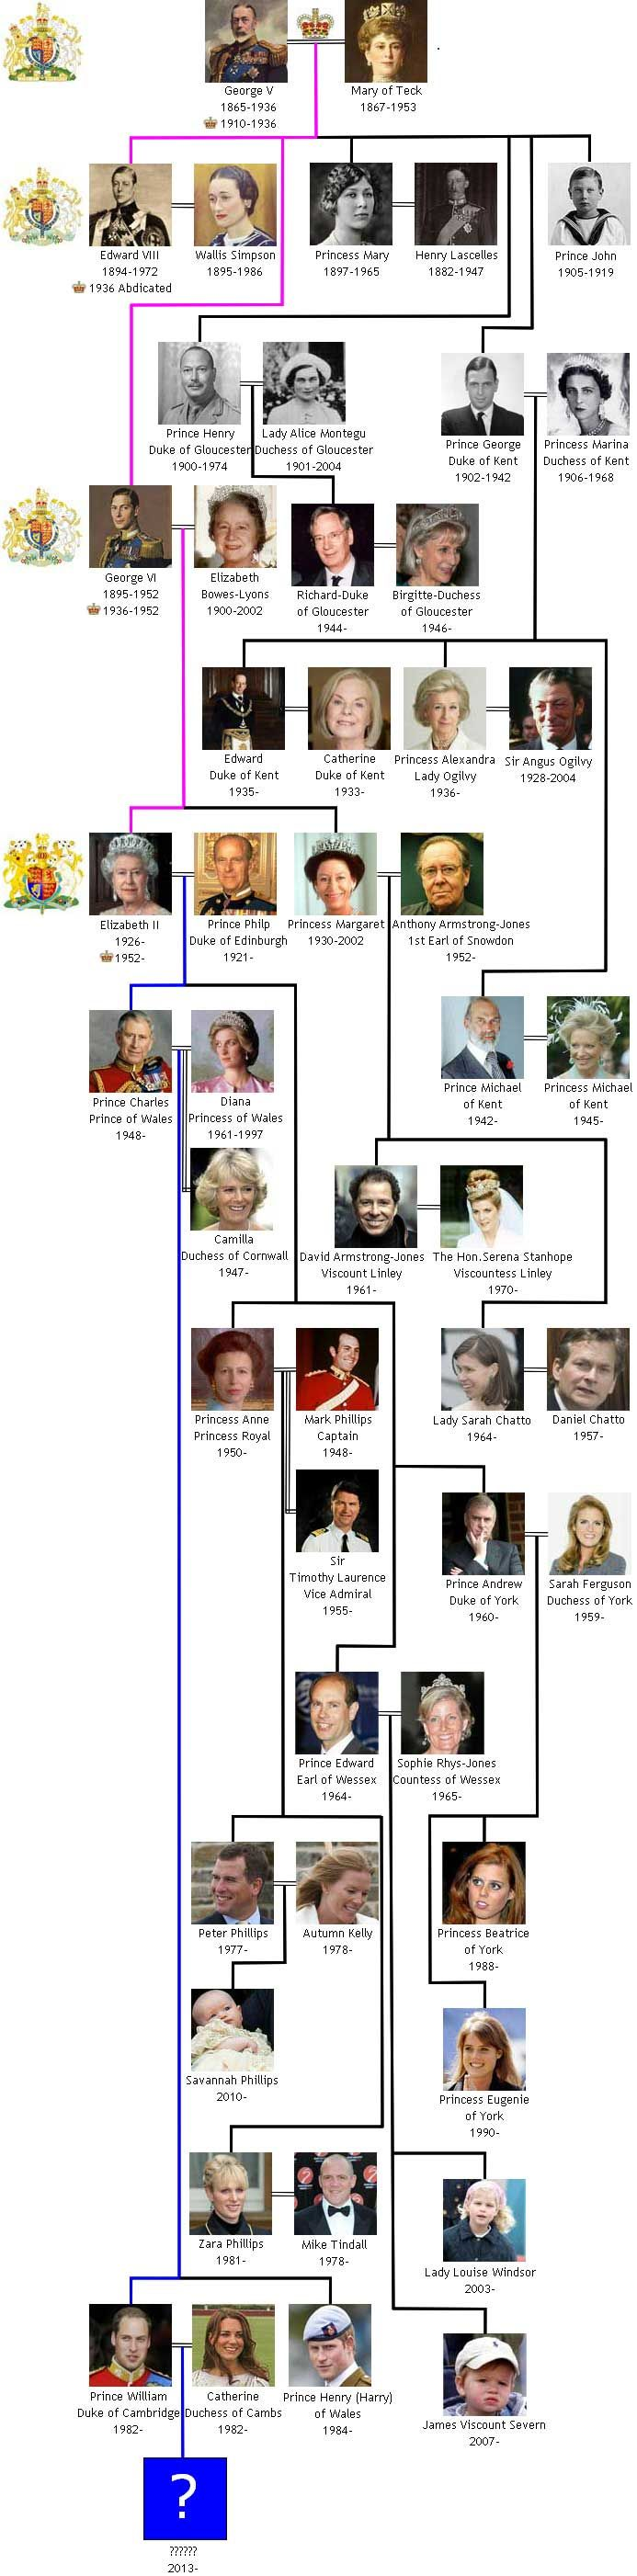 15 must see english royal family tree pins royal family trees royal house of windsor british royal family tree